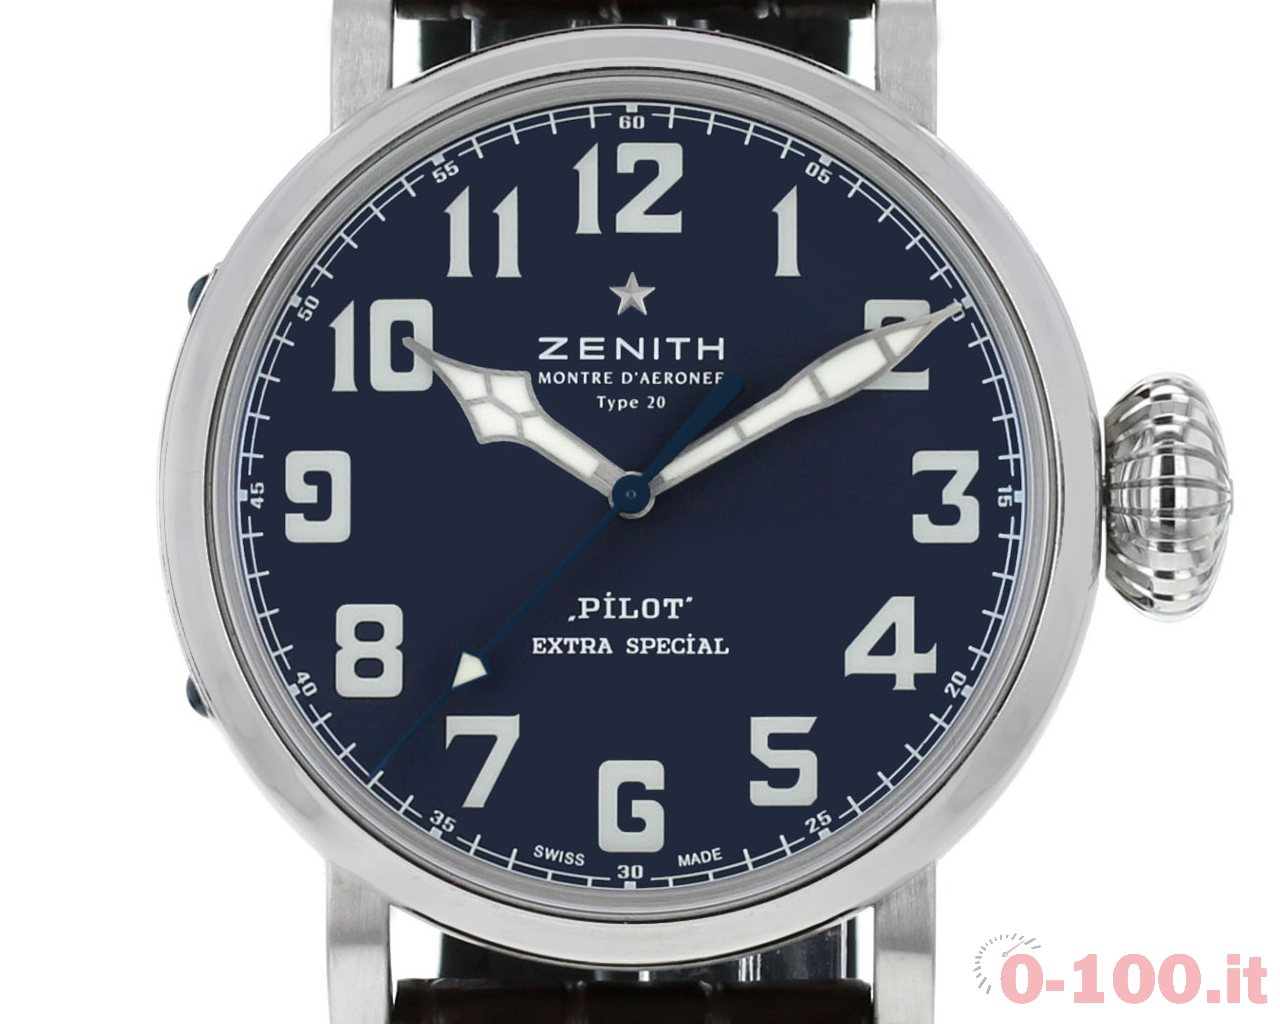 zenith-pilot-type-20-extra-special-blue-limited-edition-the-watch-gallery-prezzo-price_0-1003